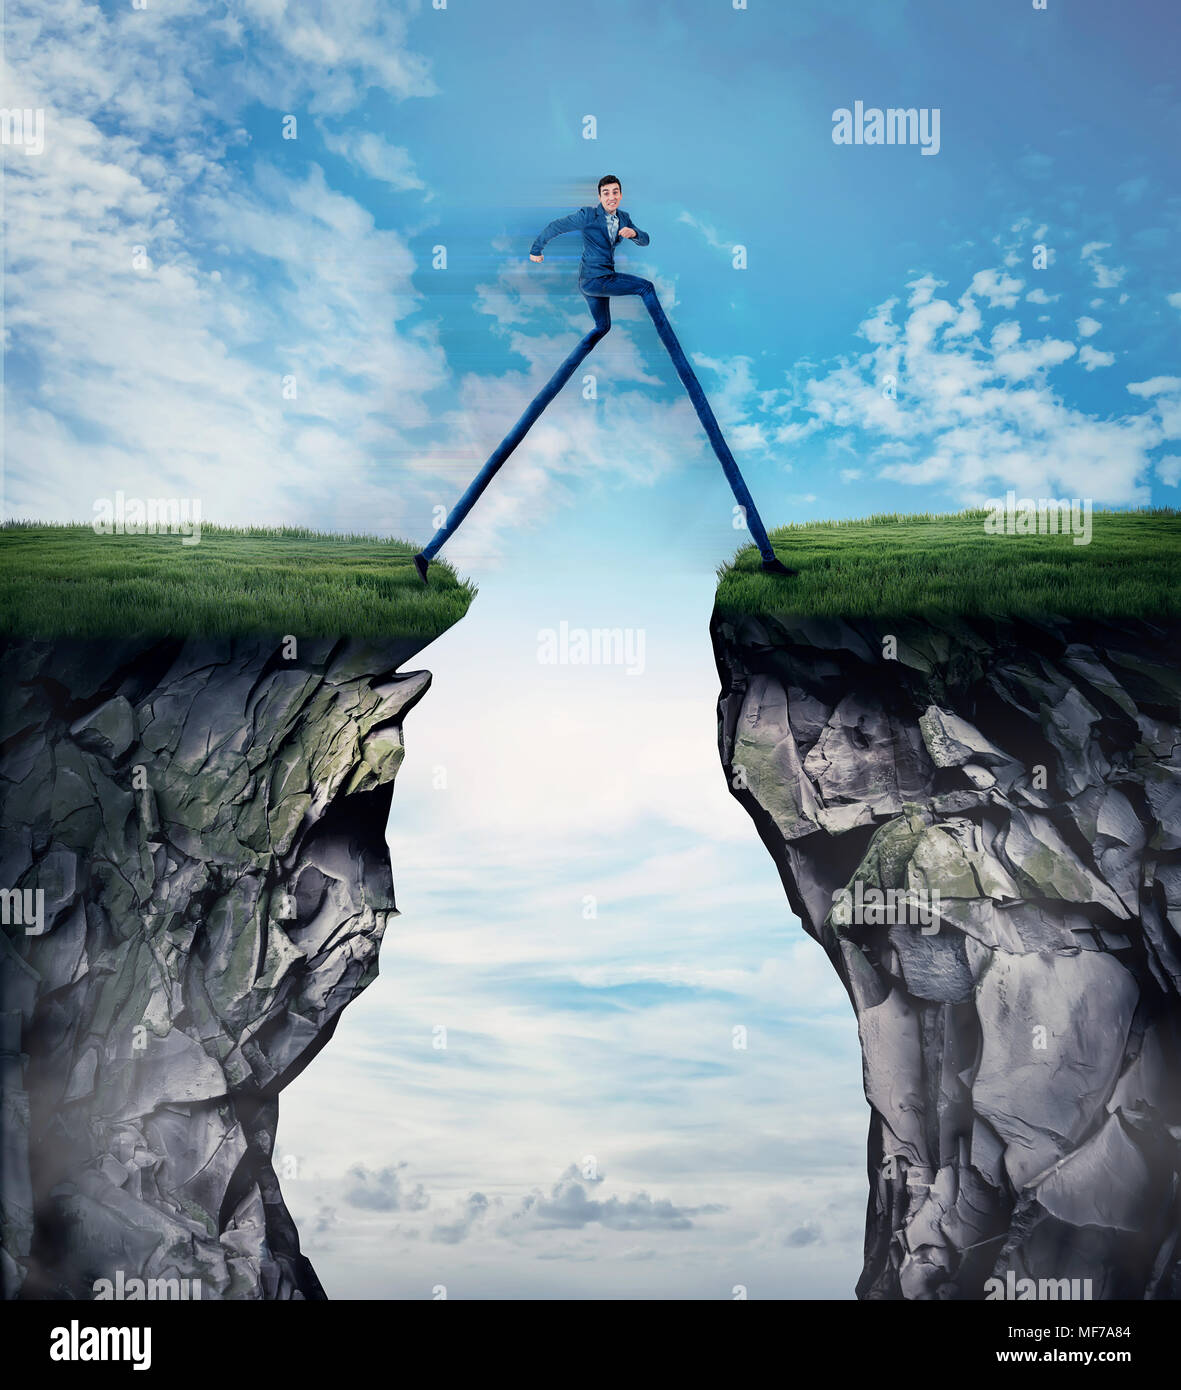 Fantasy business concept as a businessman with long legs run and leap over a chasm obstacle. Symbol of adaptation to changes, finding solution and ove - Stock Image